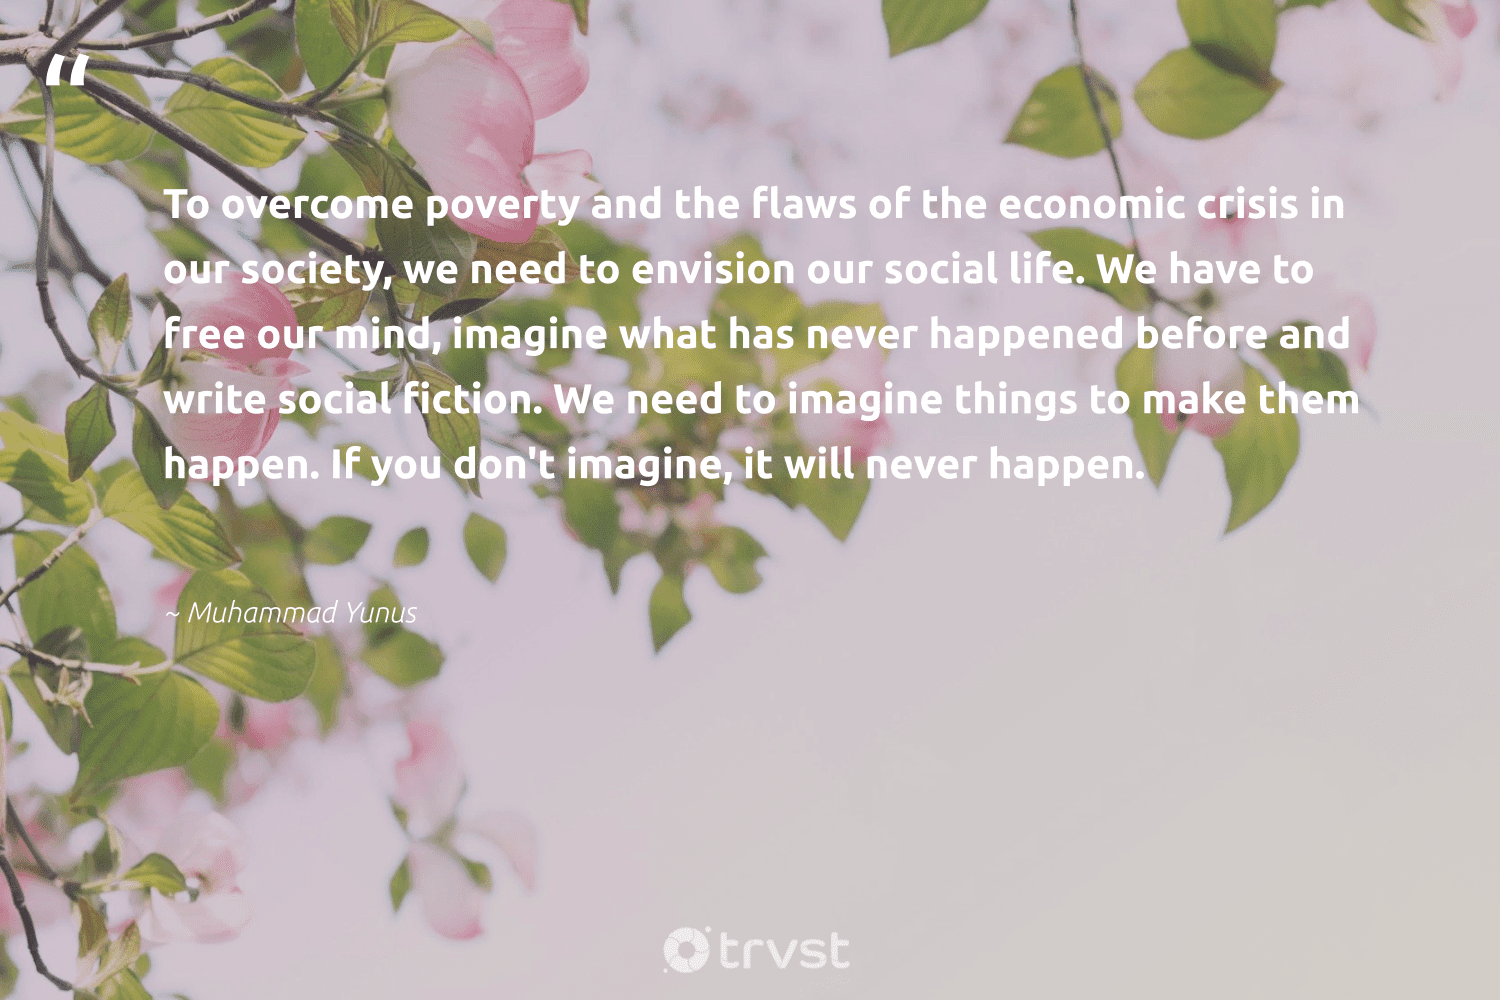 """""""To overcome poverty and the flaws of the economic crisis in our society, we need to envision our social life. We have to free our mind, imagine what has never happened before and write social fiction. We need to imagine things to make them happen. If you don't imagine, it will never happen.""""  - Muhammad Yunus #trvst #quotes #poverty #society #endpoverty #weareallone #makeadifference #collectiveaction #equalrights #inclusion #gogreen #sustainablefutures"""